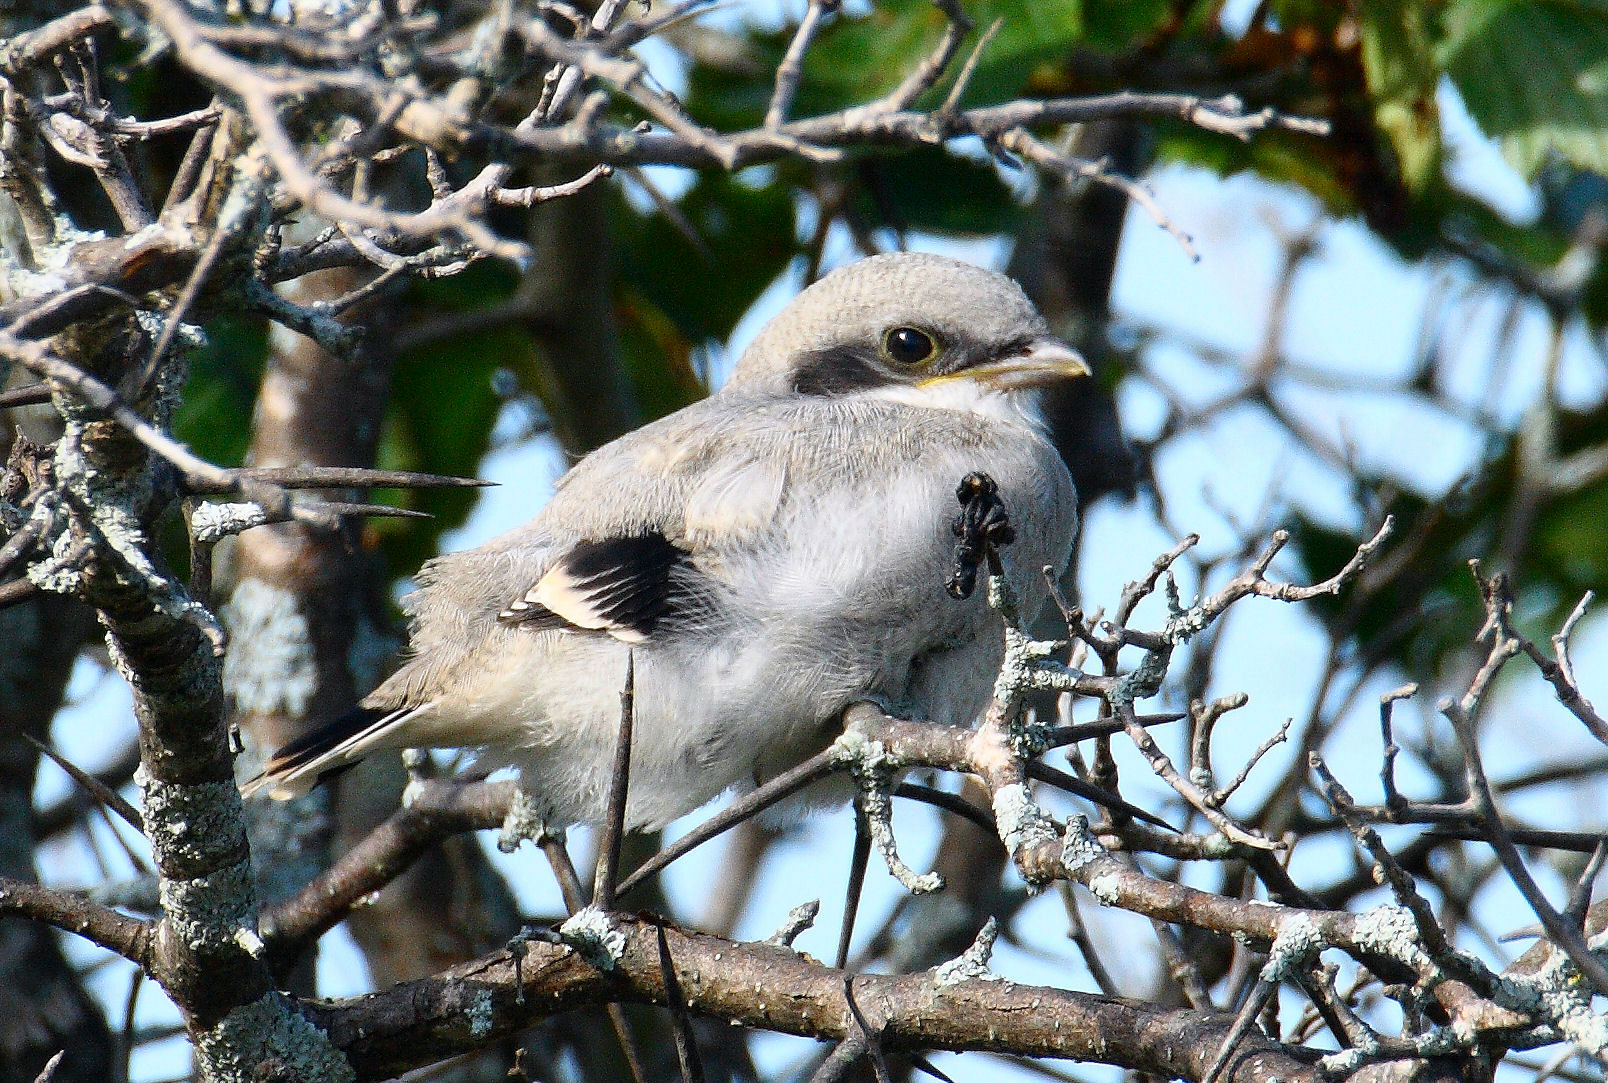 A young fledgling, approximately one week out of the nest (Photo Credit: Larry Kirtley)